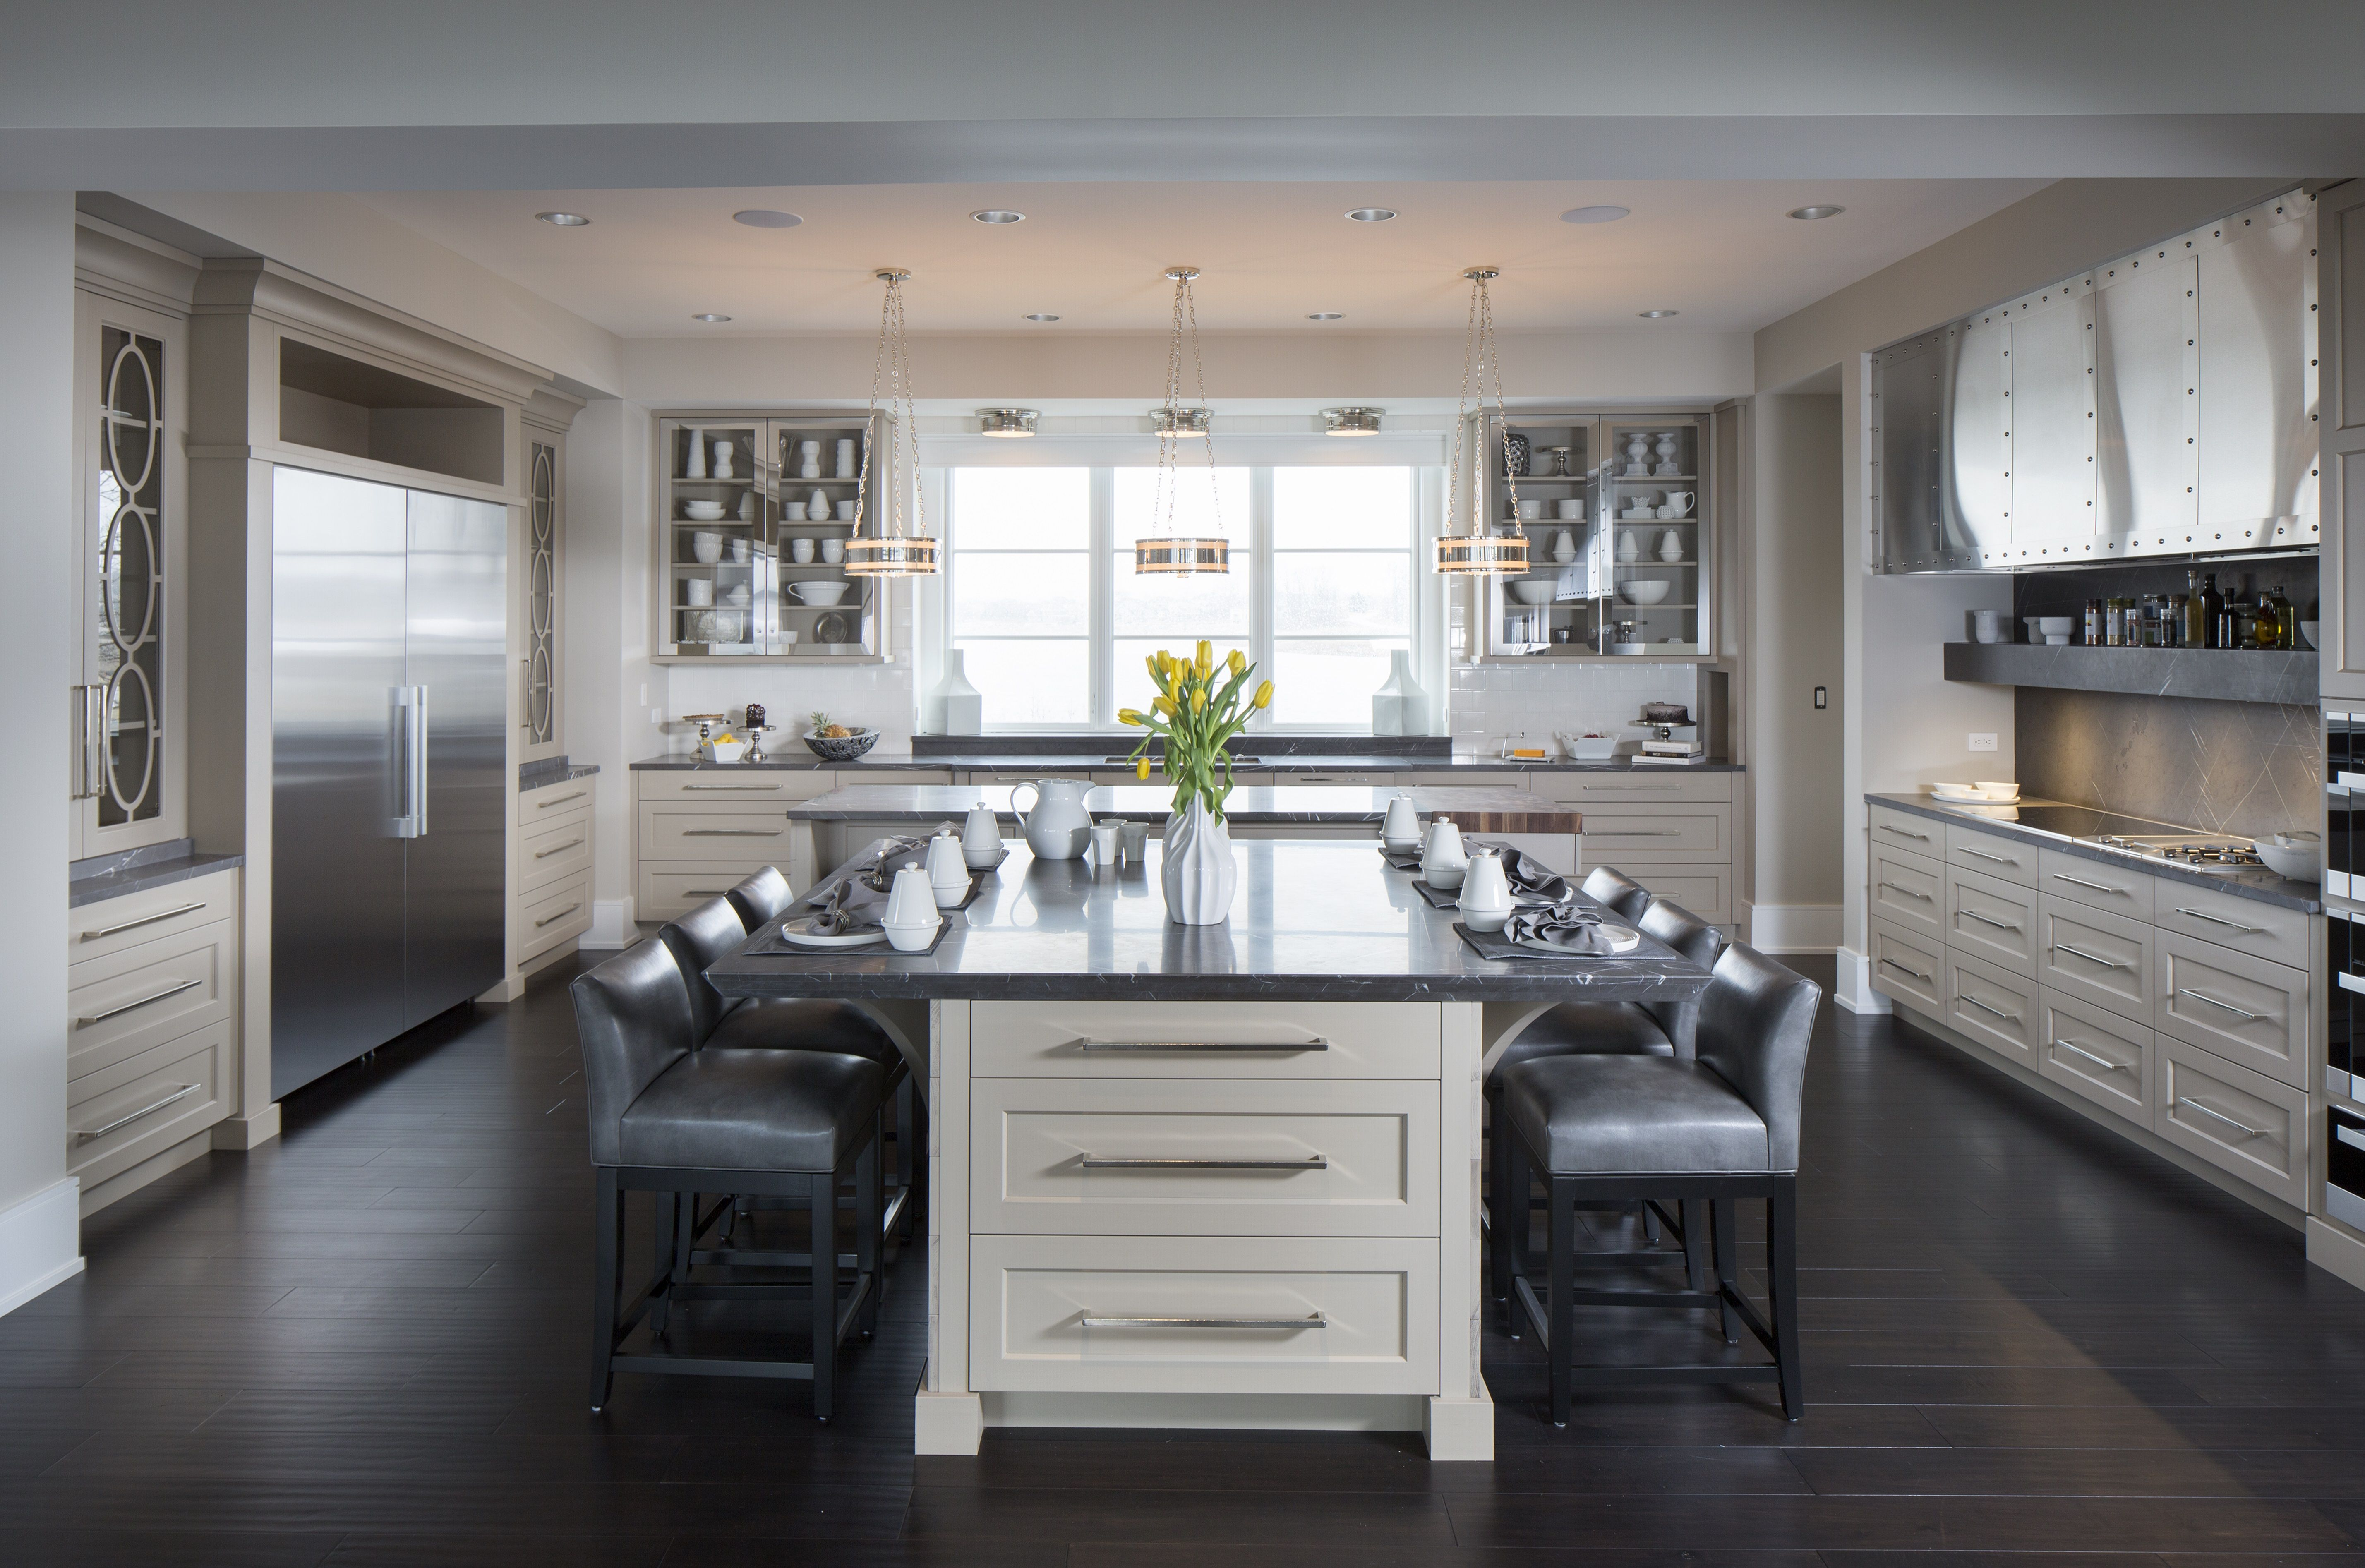 Contemporary kitchen Kitchens by Design, Indianapolis